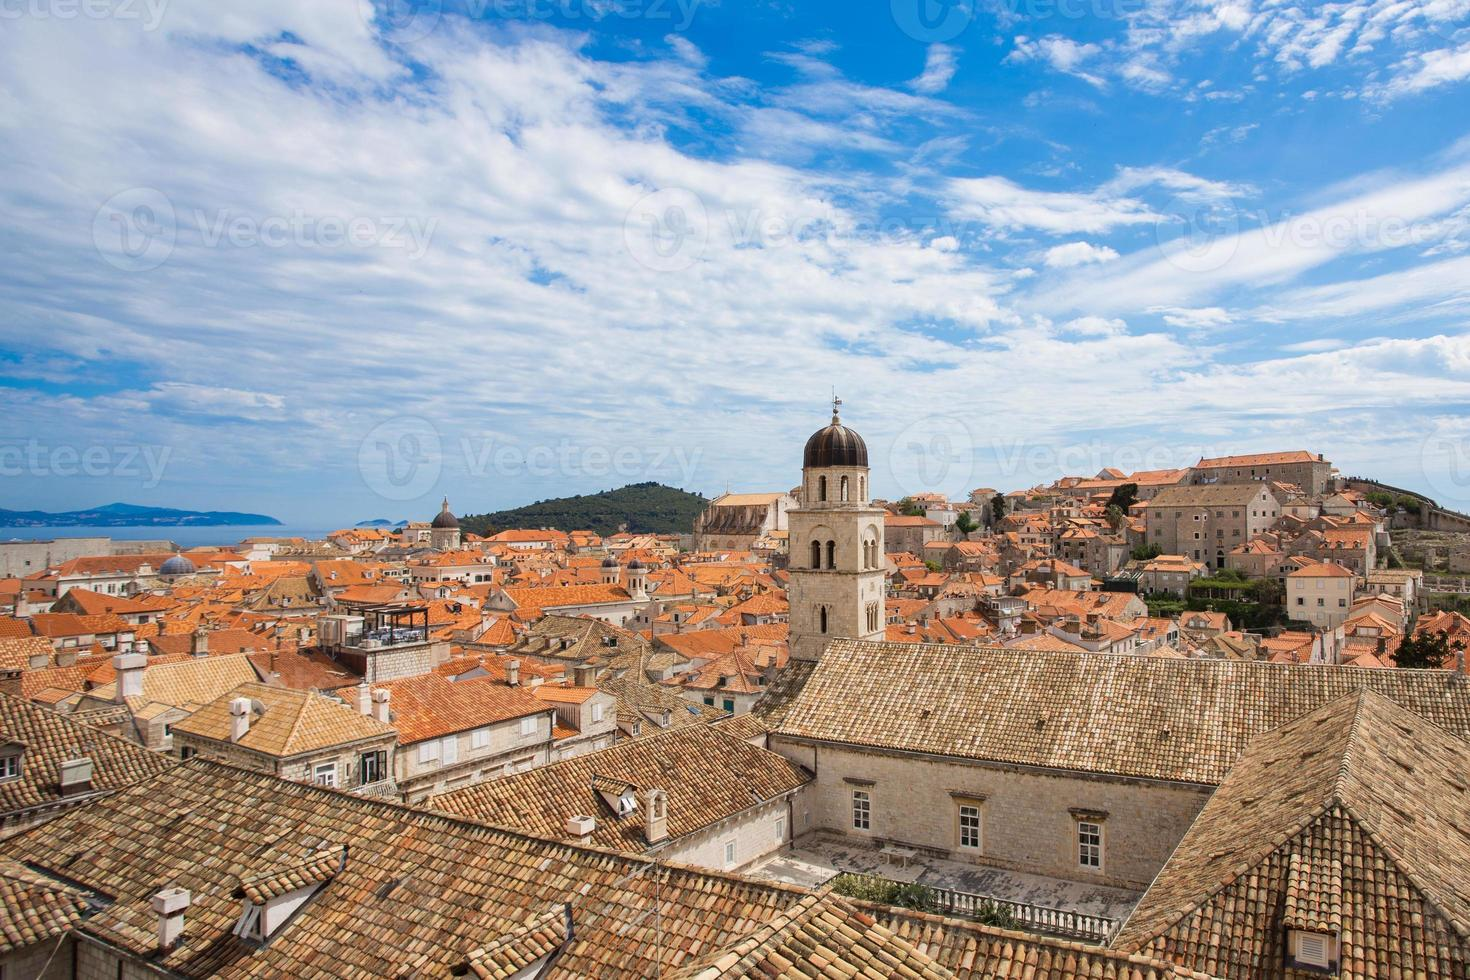 The roofs of Dubrovnik photo